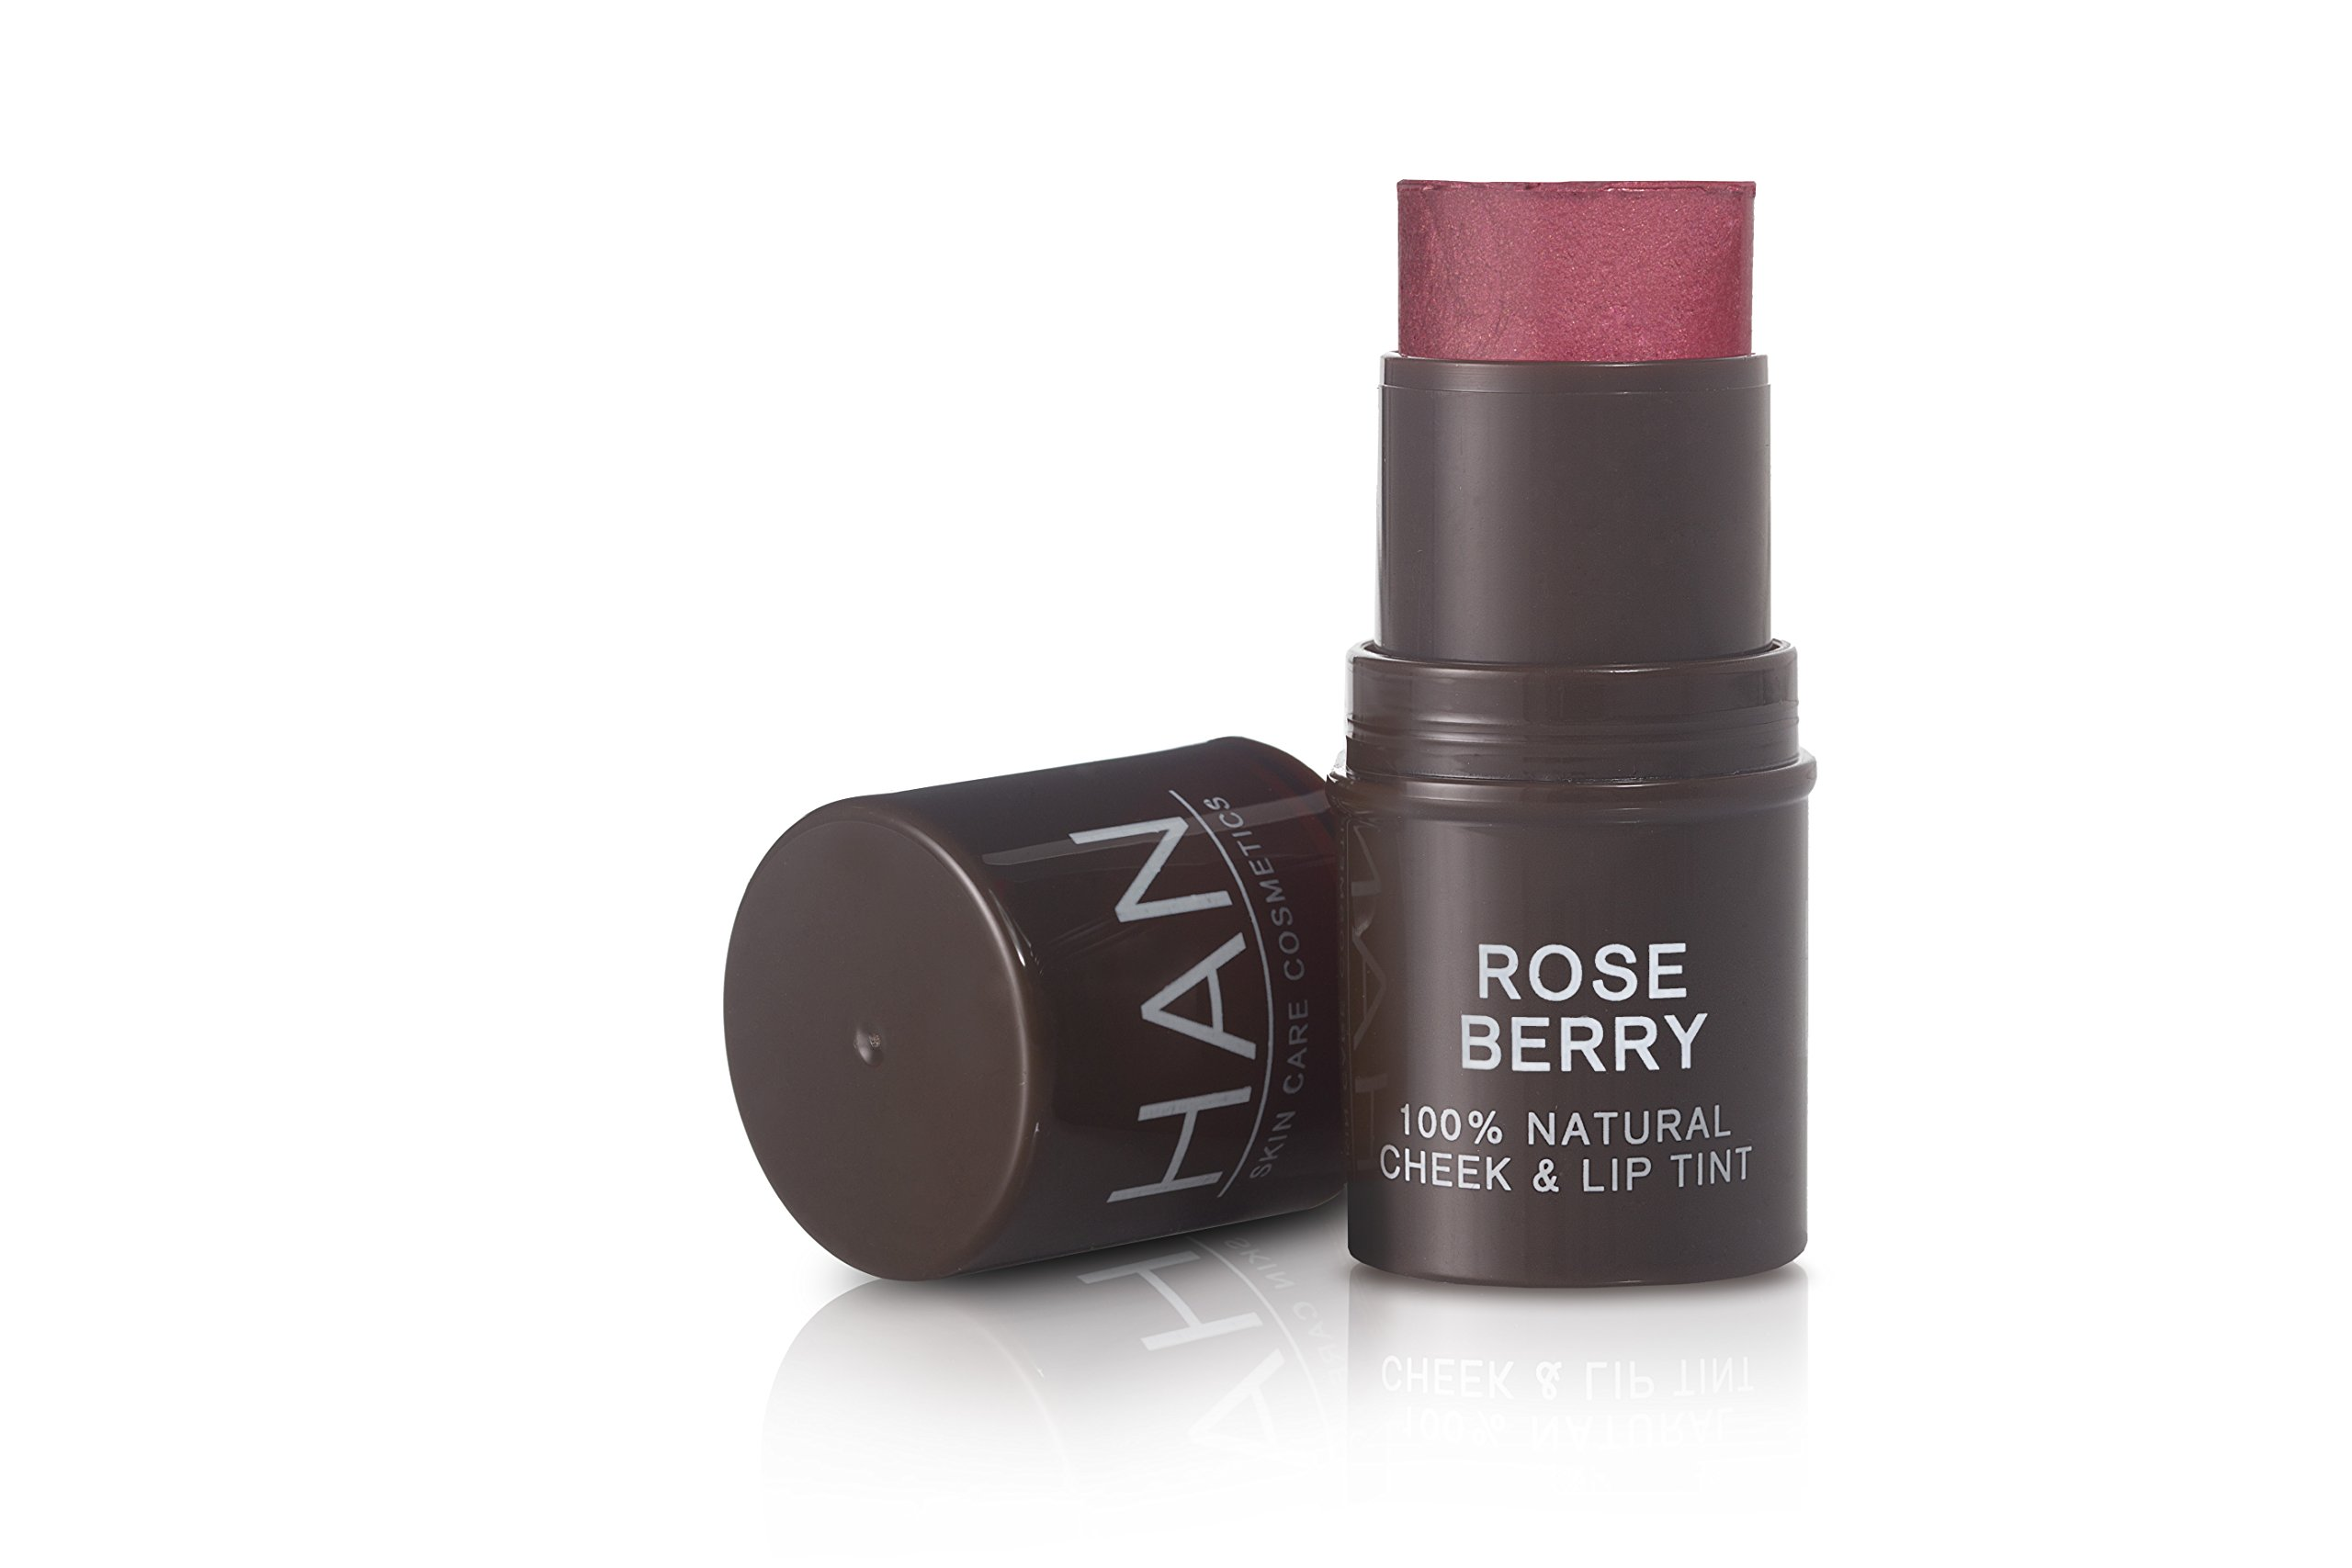 HAN Skin Care Cosmetics Natural Cheek & Lip Tint, Rose Berry